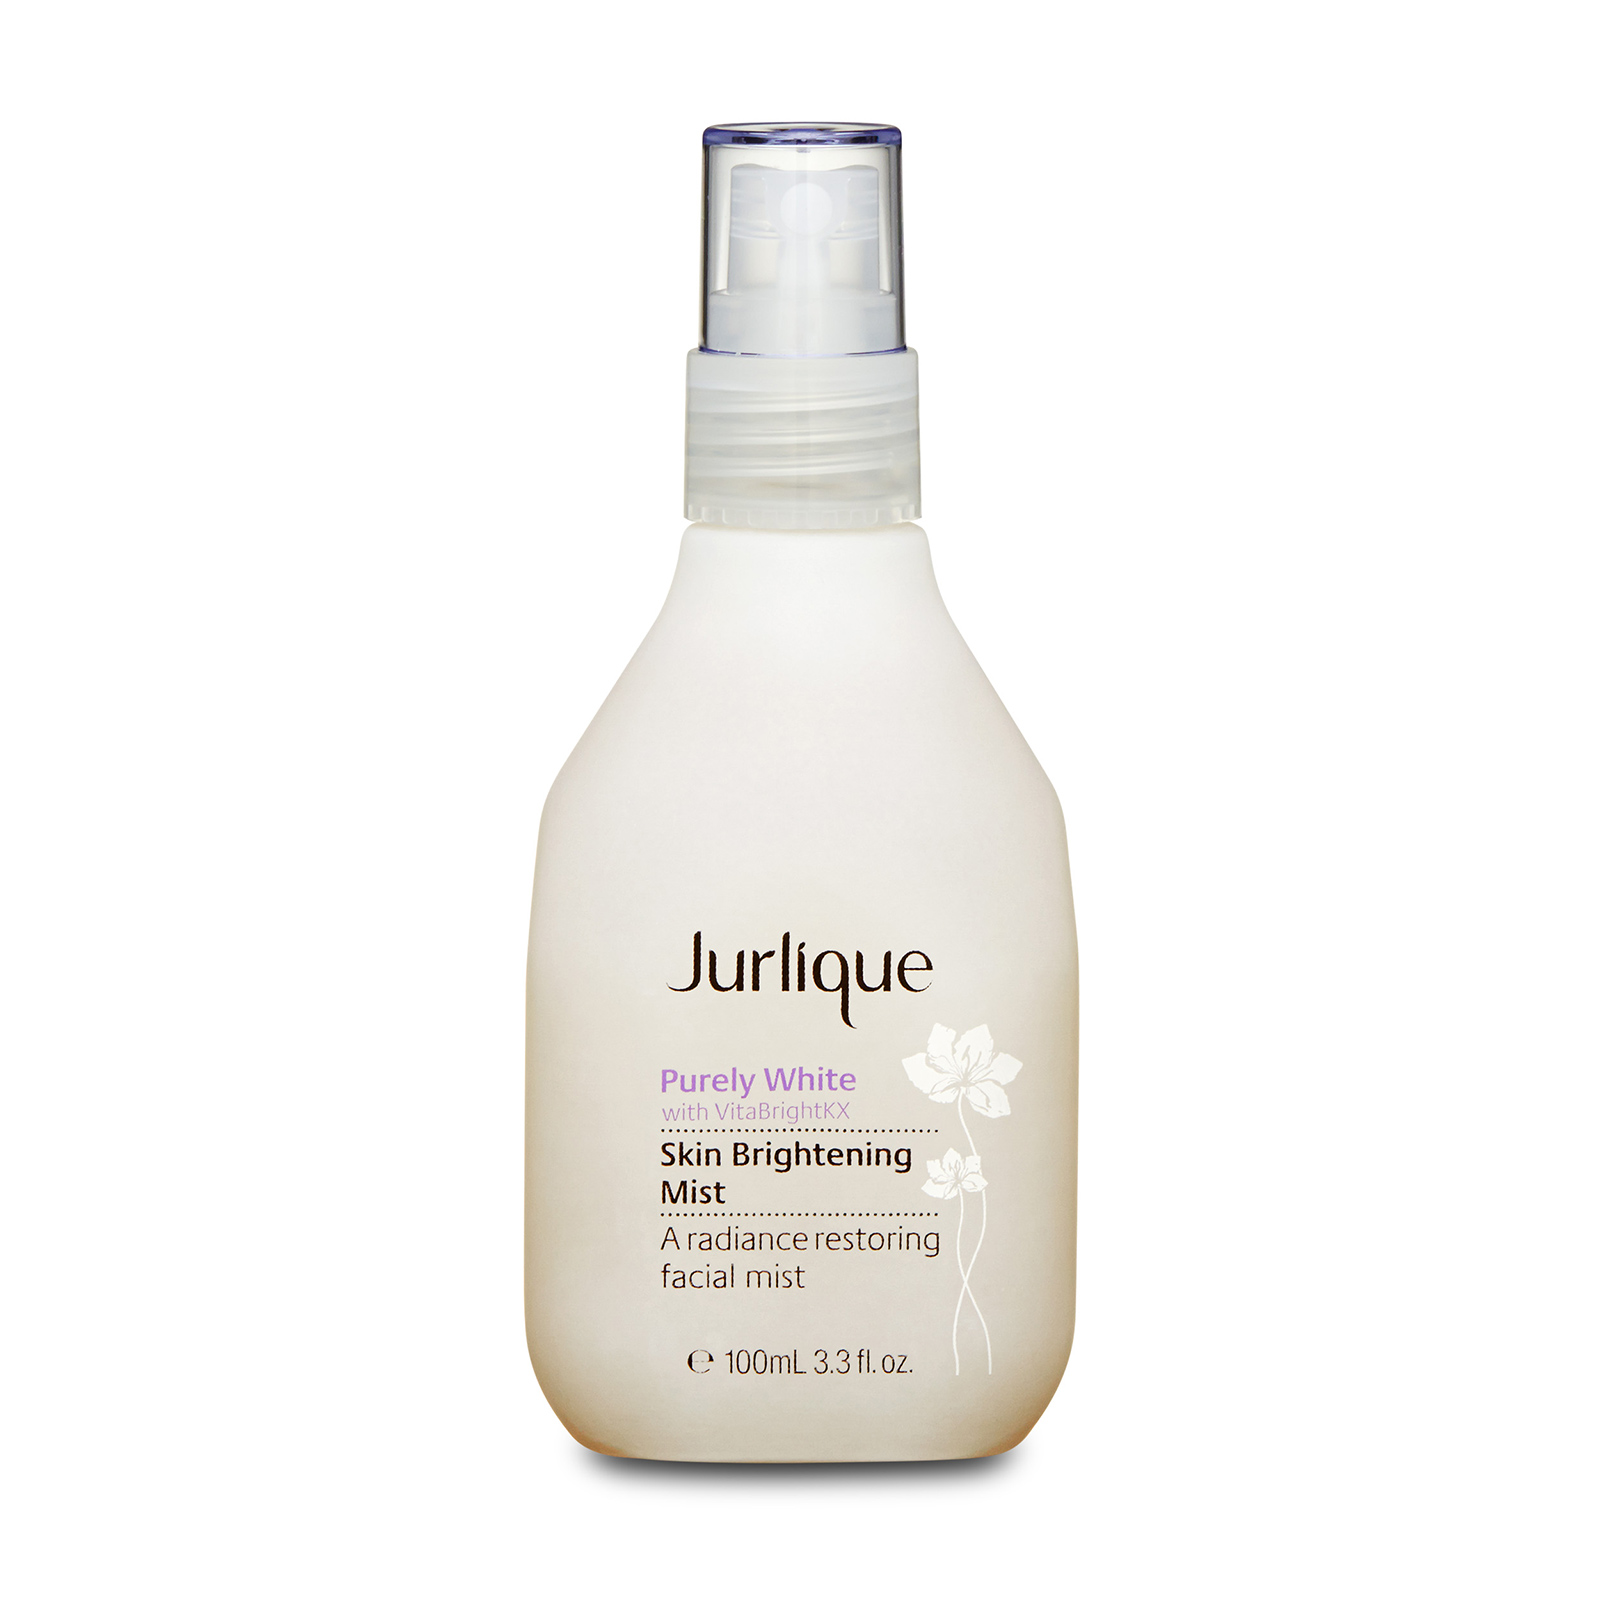 Jurlique Purely White Skin Brightening Mist 3.3oz, 100ml